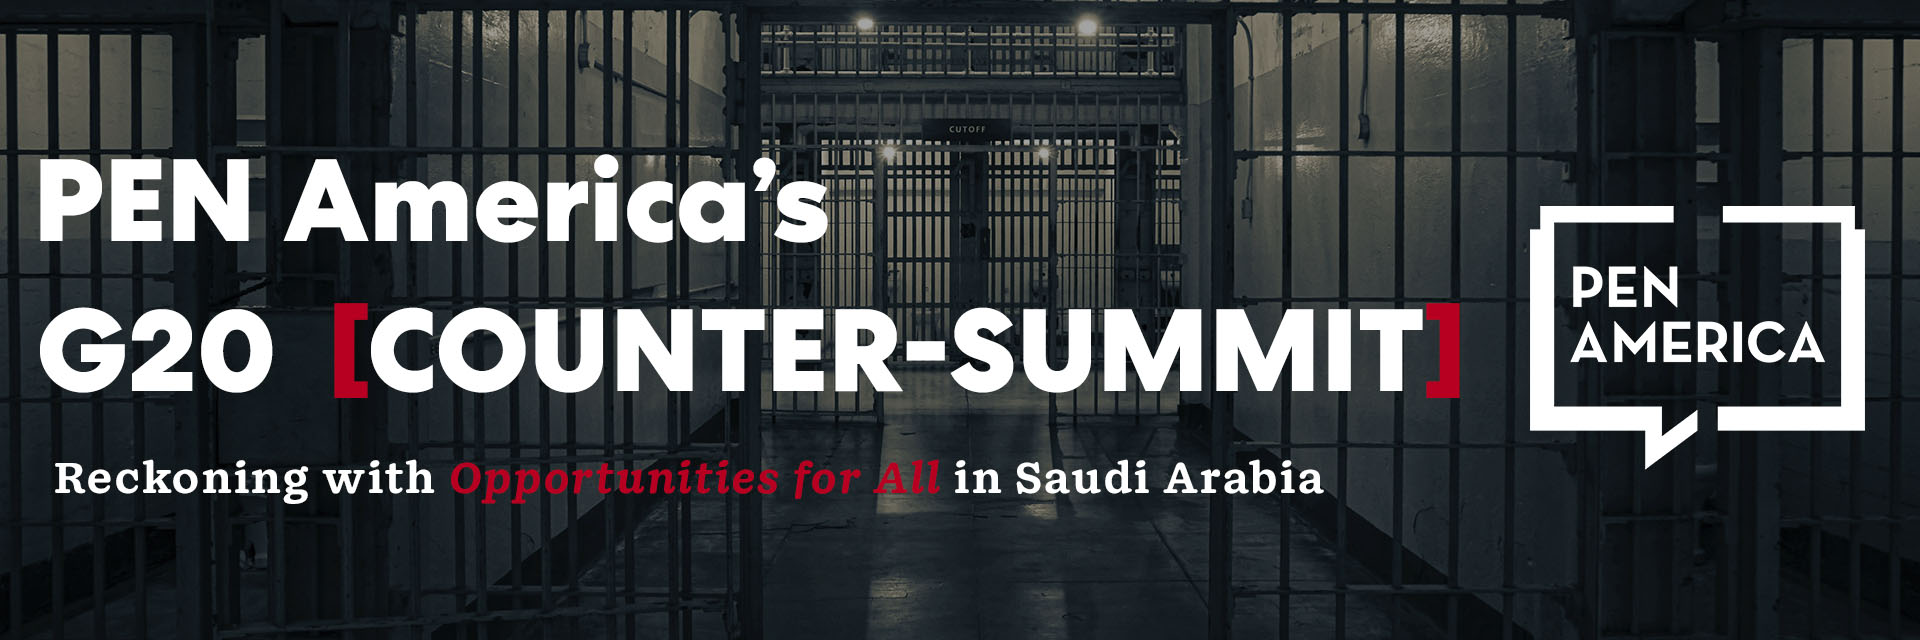 """Jail cell in background; on top, text that reads """"PEN America's G20 Counter-Summit: Reckoning with Opportunities for All in Saudi Arabia"""" and logo of PEN America"""